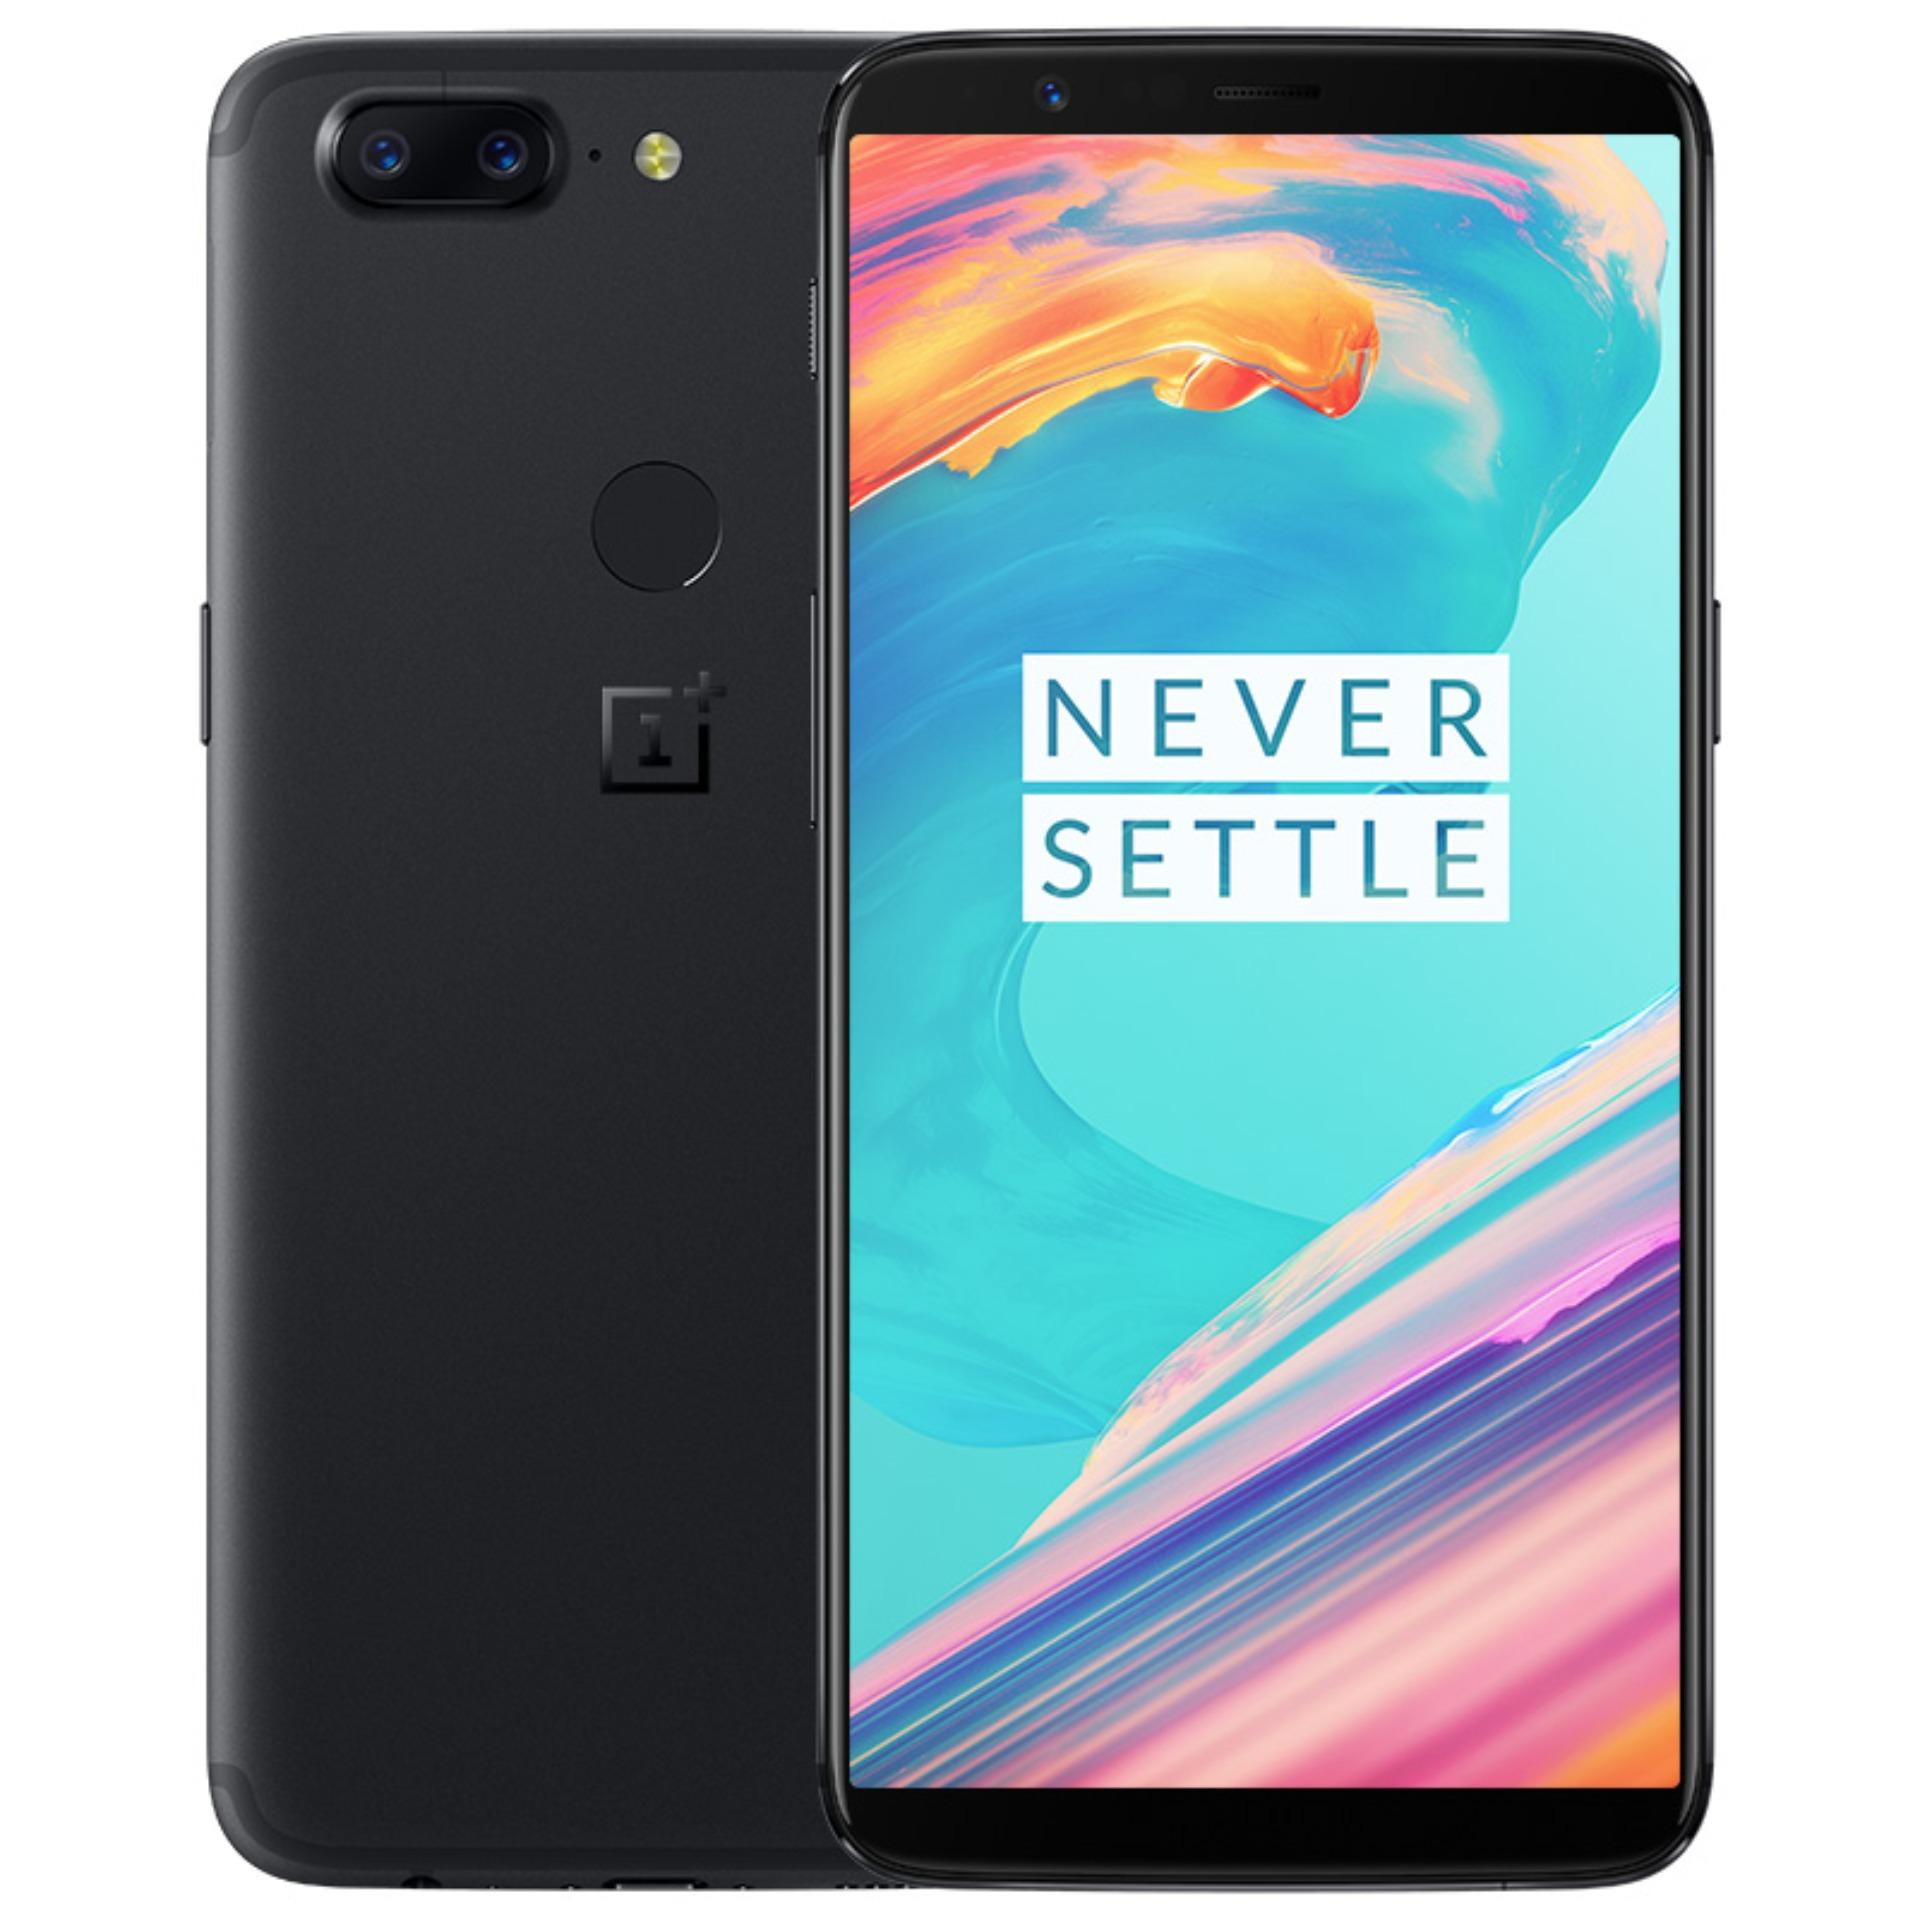 Sale Oneplus 5T Midnight Black 6Gb Ram 64Gb Rom Brand New Local Set Oneplus Wholesaler